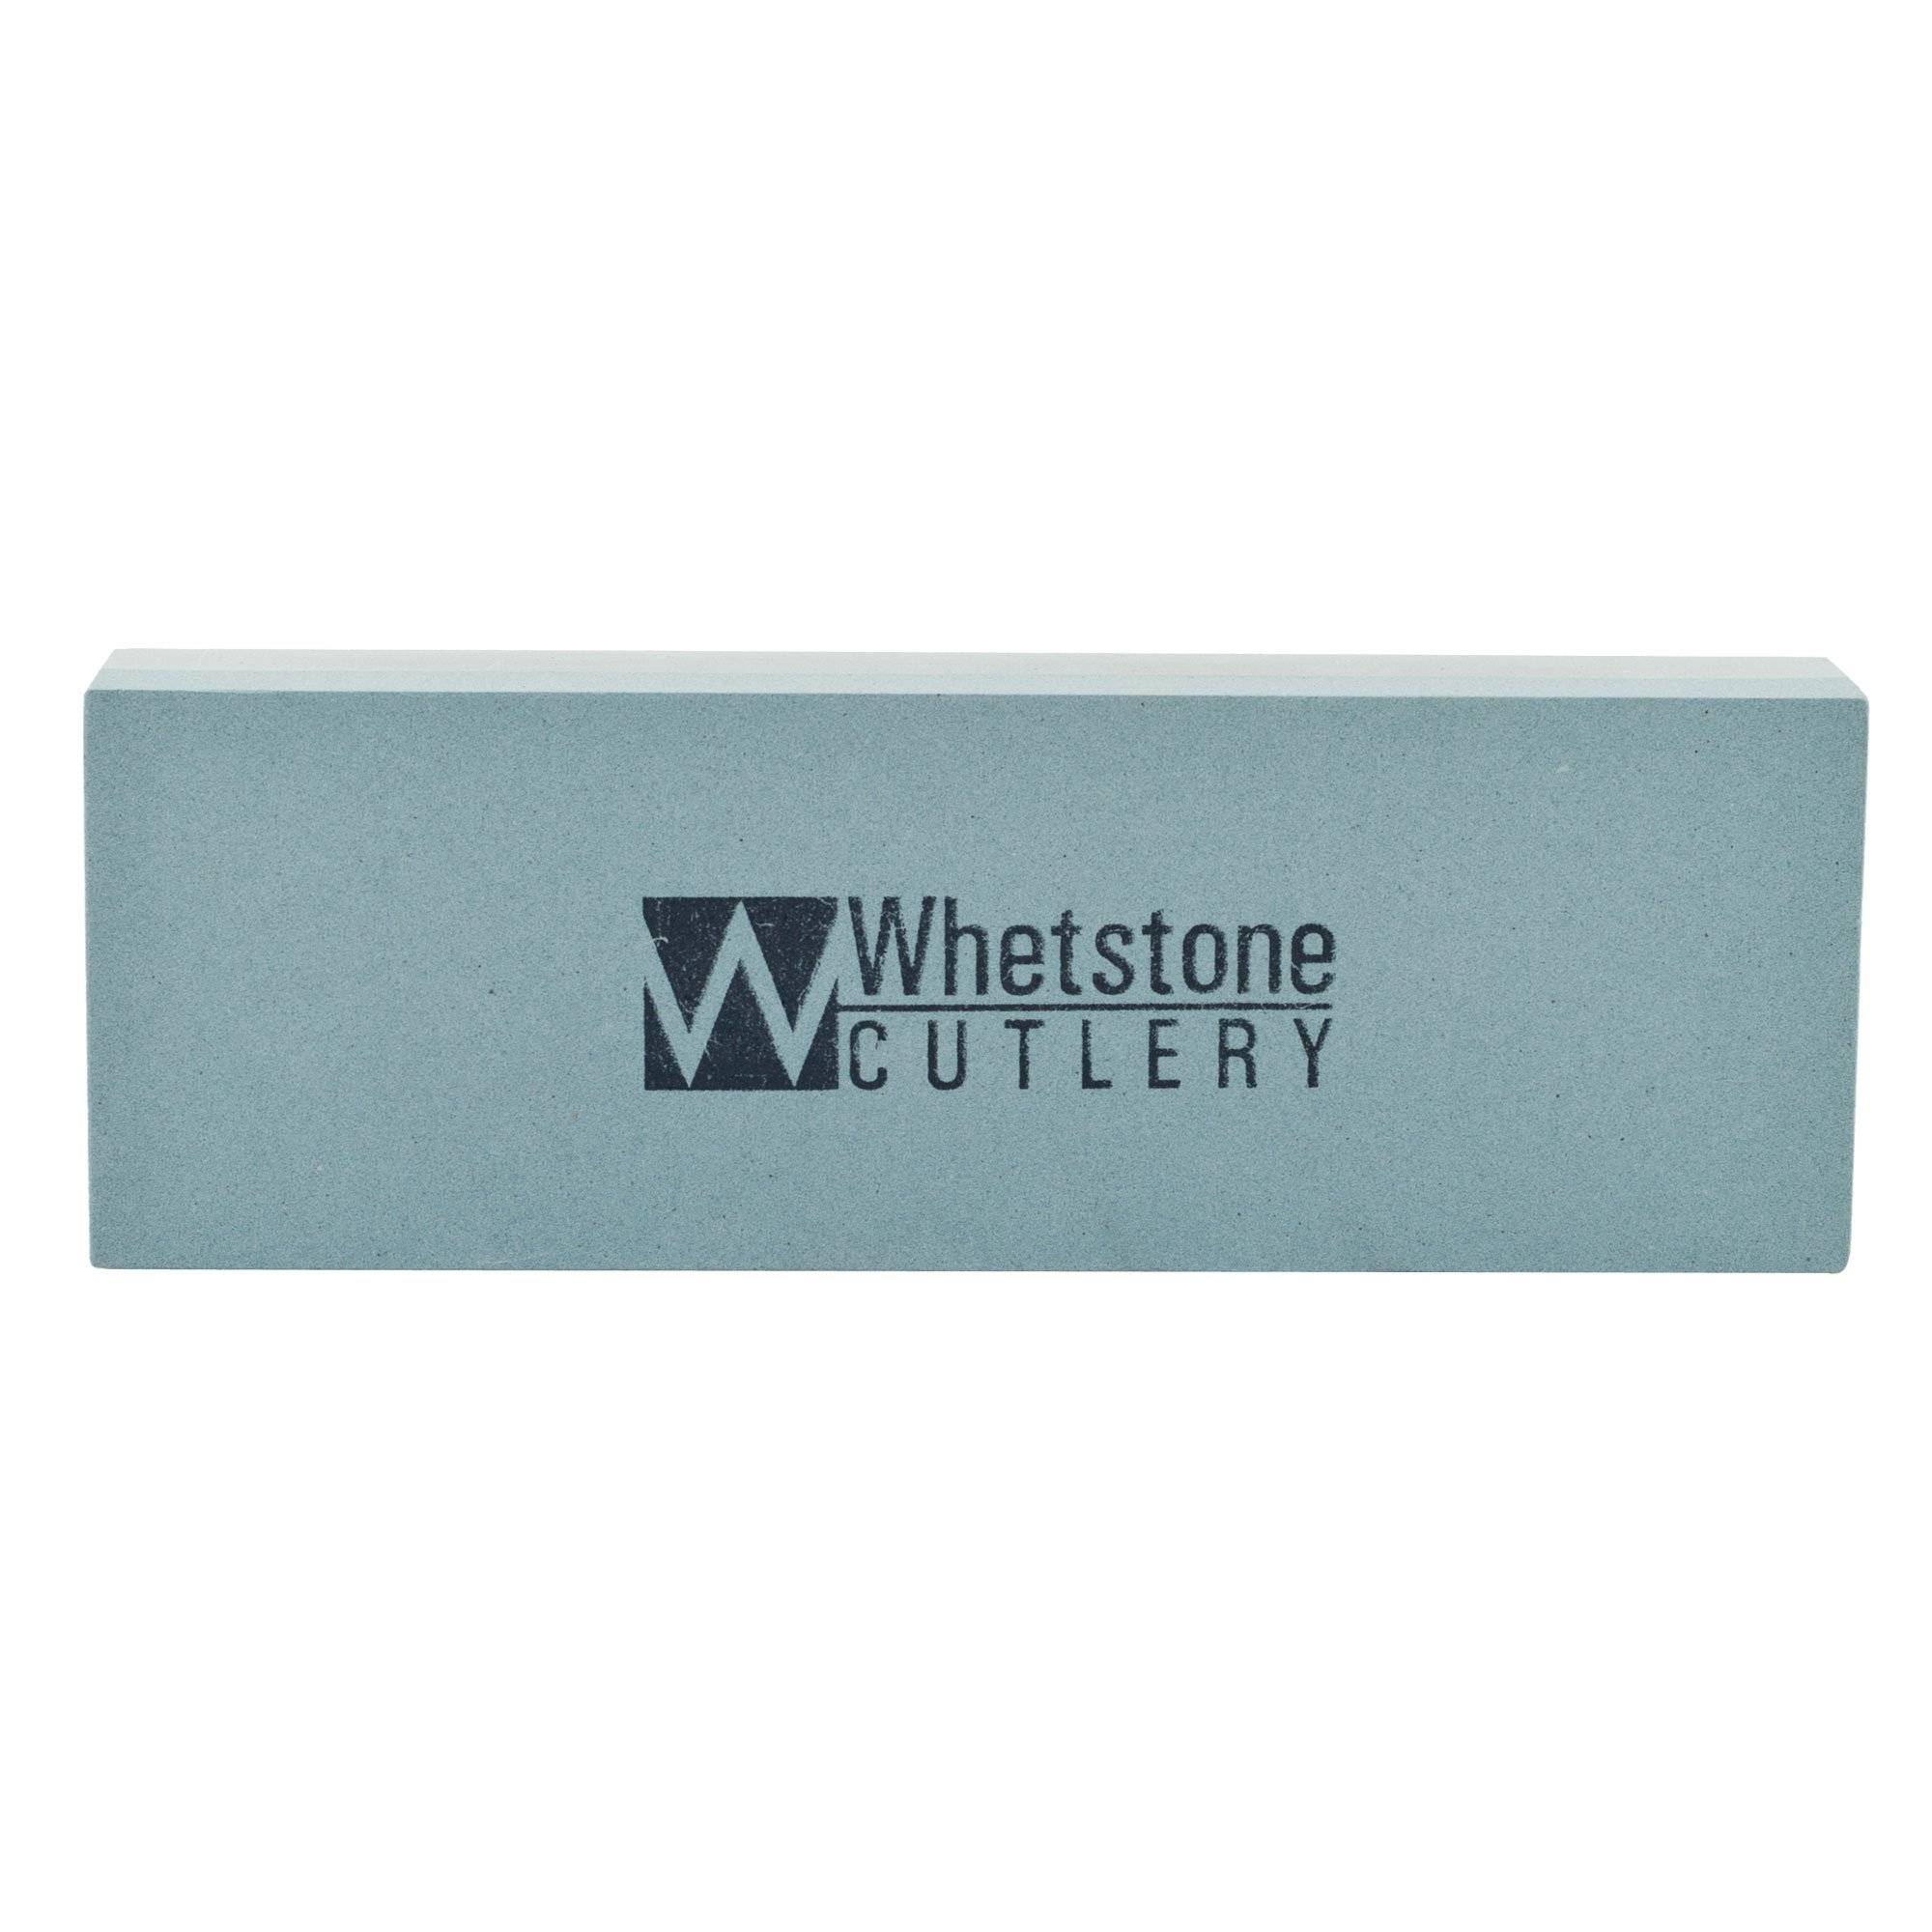 Whetstone Cutlery 20-10960 Knife Sharpening Stone-Dual Sided 400/1000 Grit Water Stone-Sharpener and Polishing Tool for Kitchen, Hunting and Pocket Knives or Blades by Whetstone by Whetstone Cutlery (Image #3)